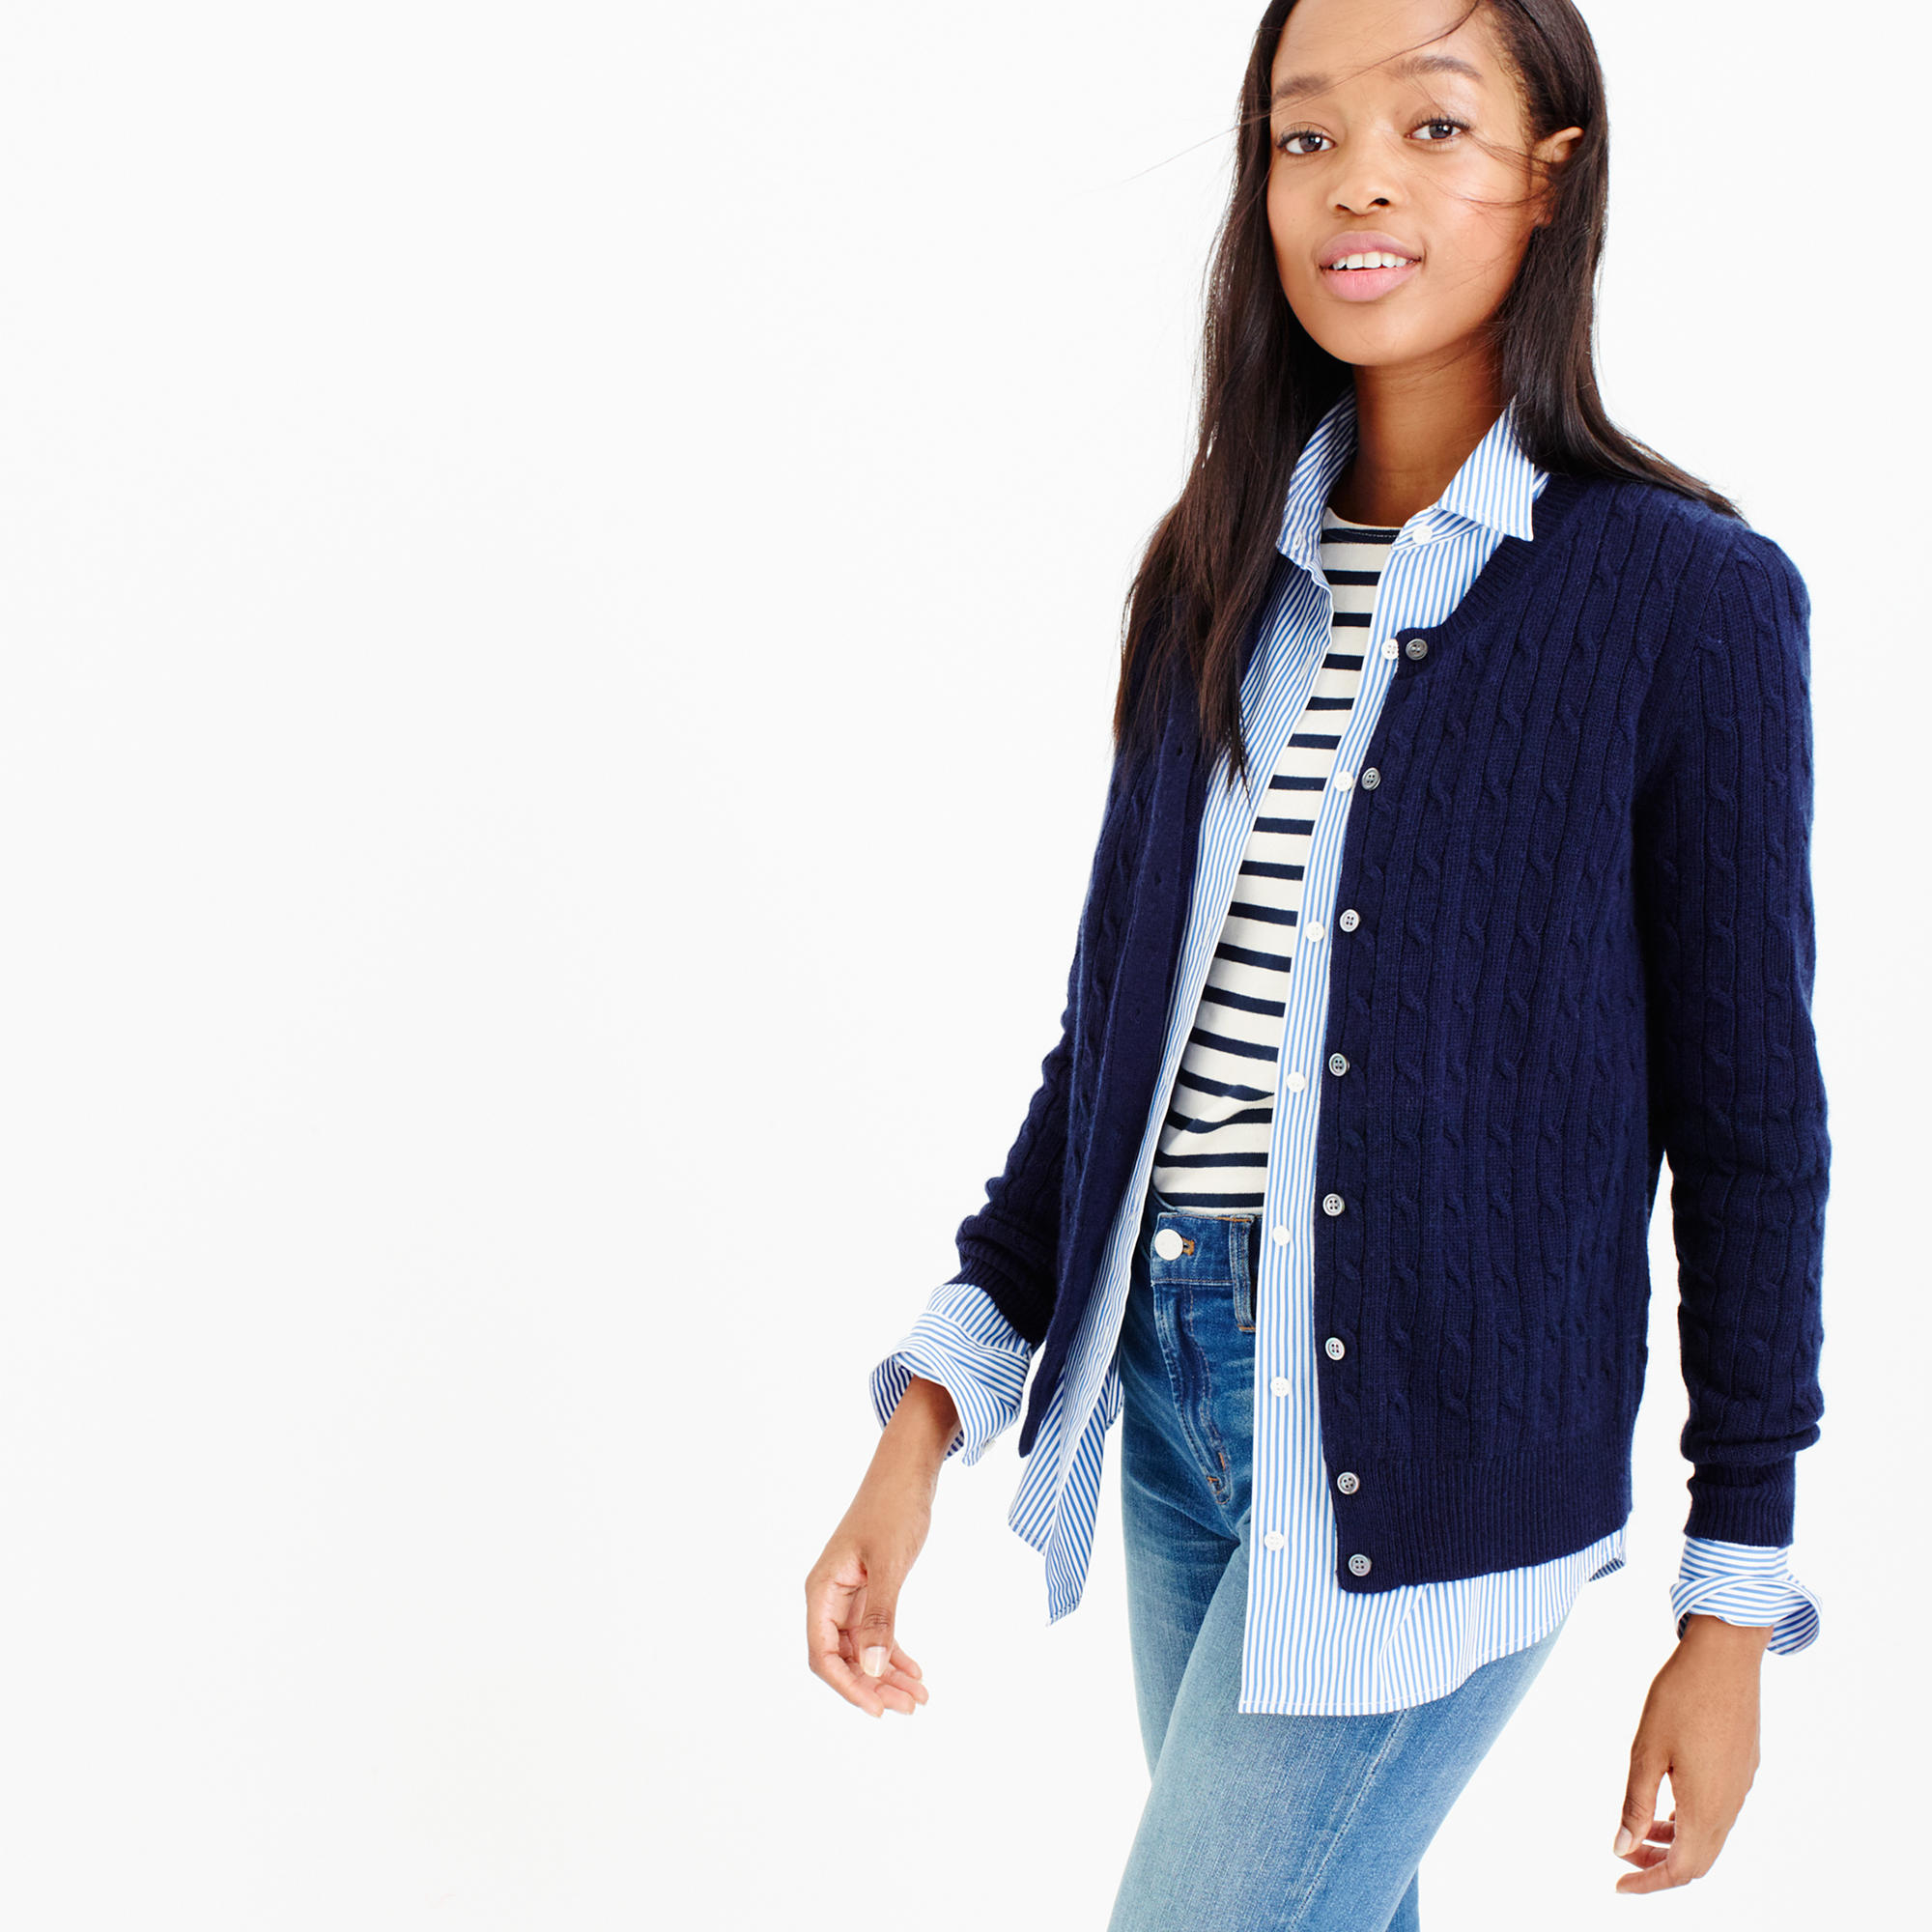 J Crew Cardigan Images - Reverse Search